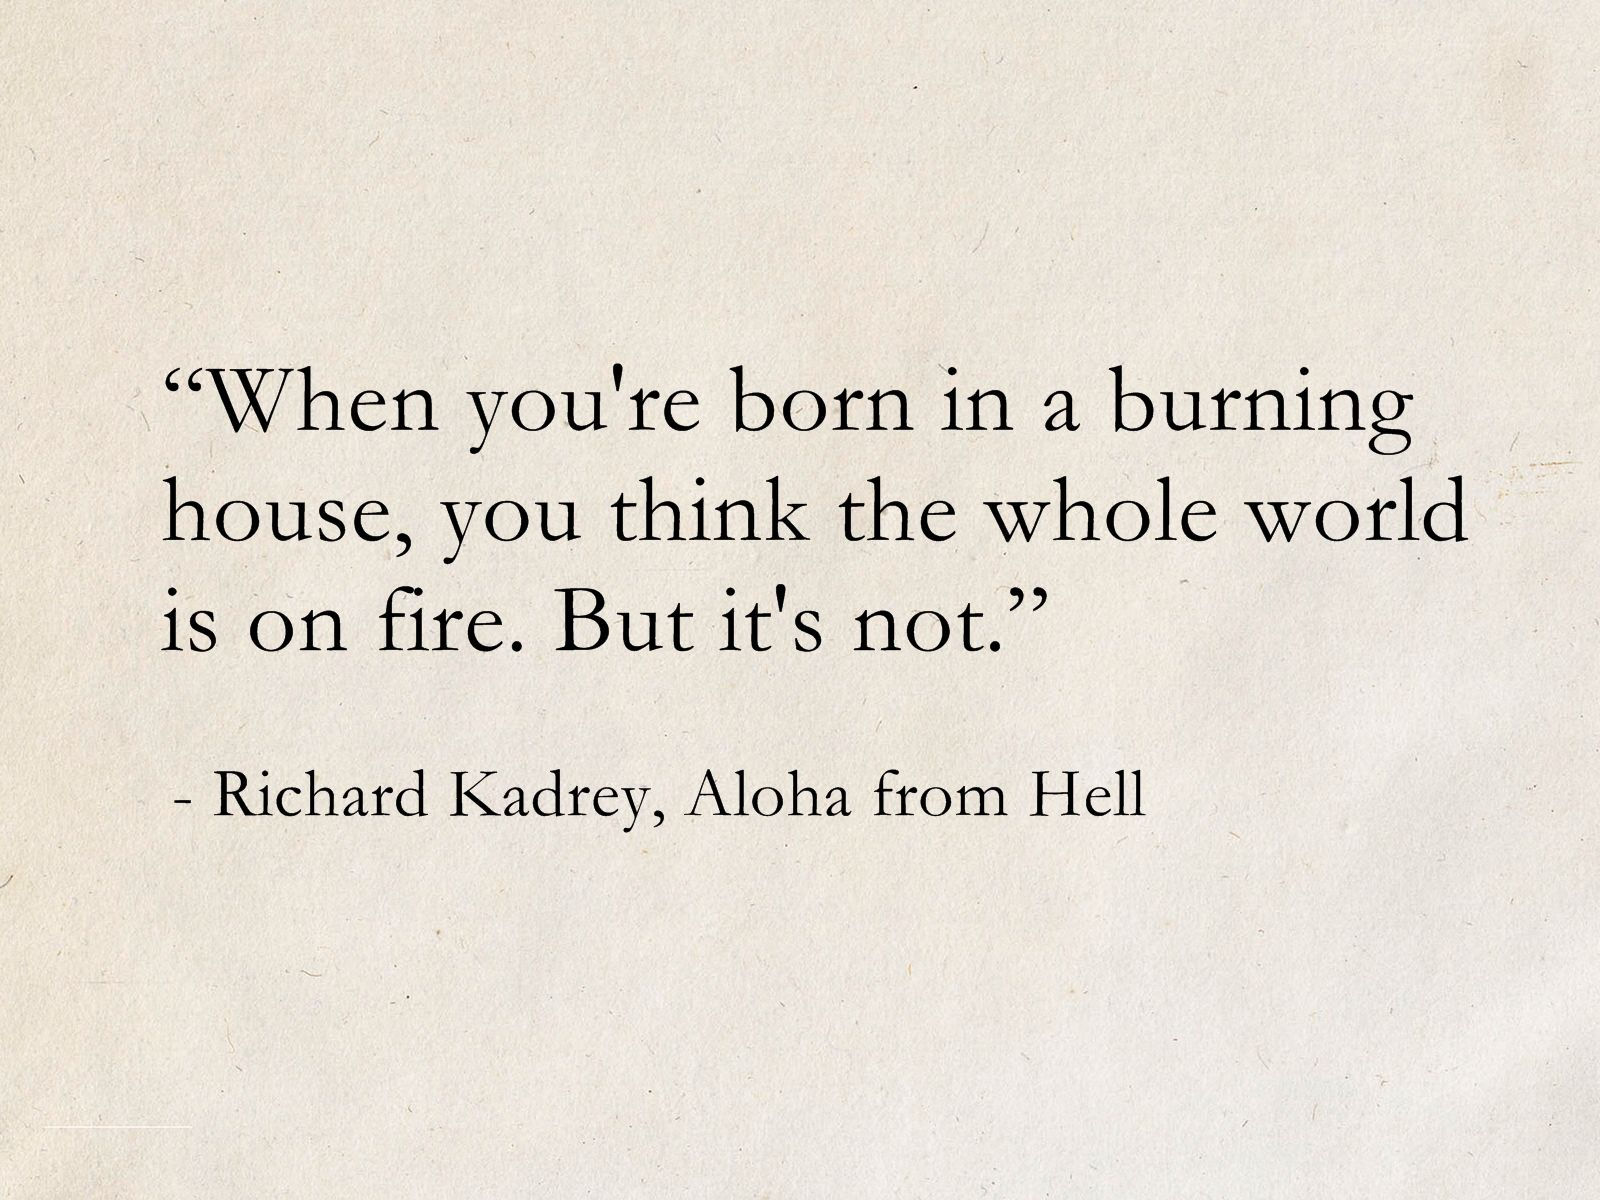 Best Richard Kadrey Quotes To Make You Laugh and Think